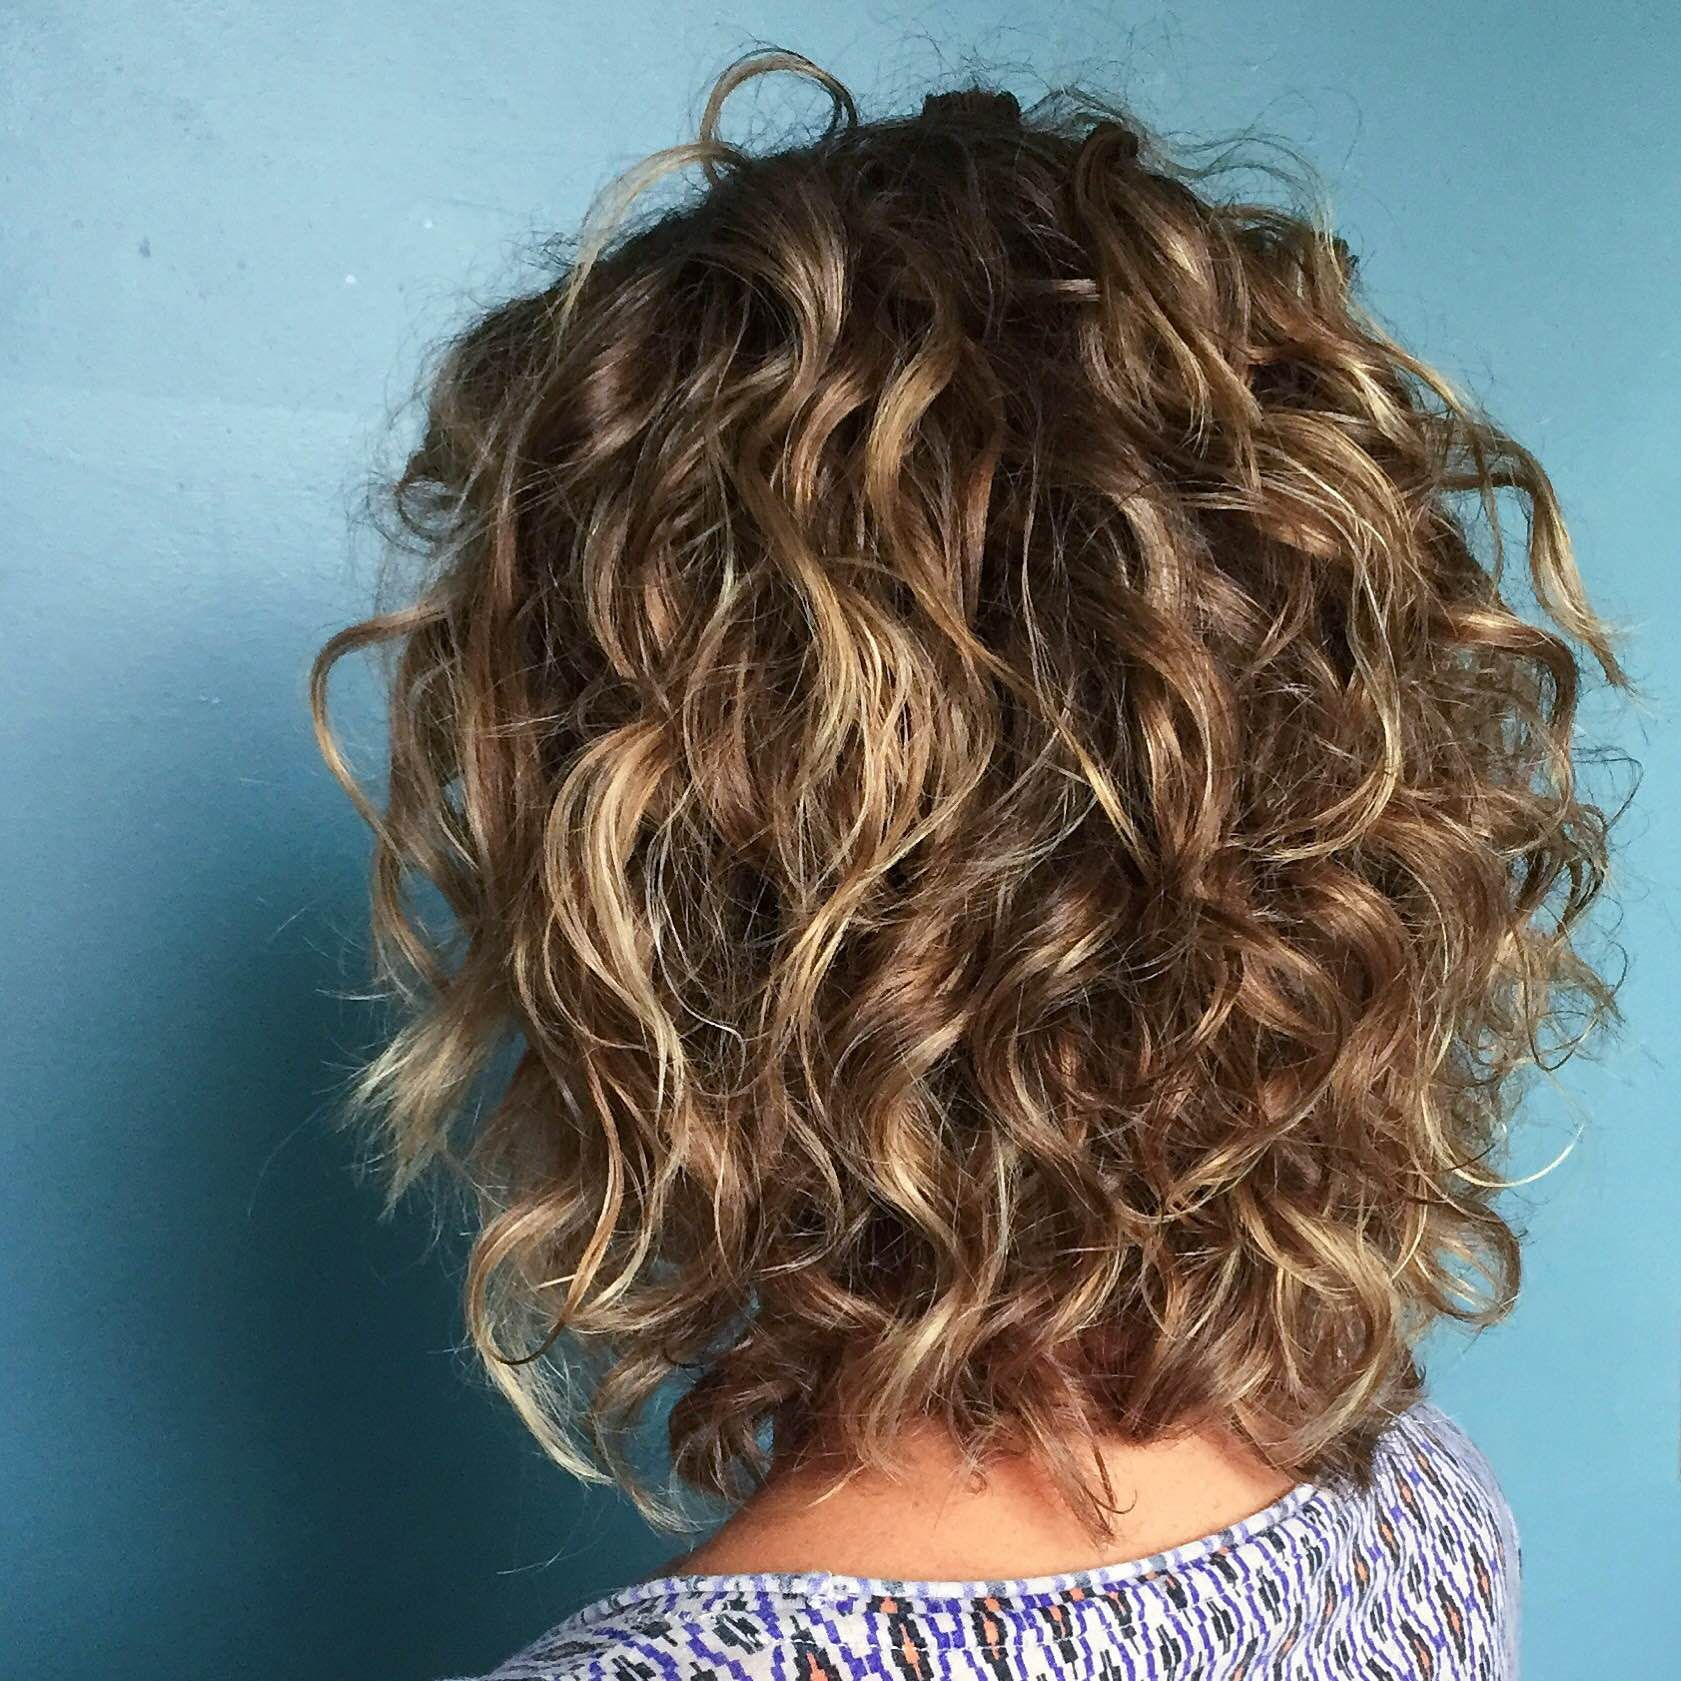 Curly Hairstyles Short In Back Long In Front Curly Hair Styles Short Curly Hairstyles For Women Medium Hair Styles